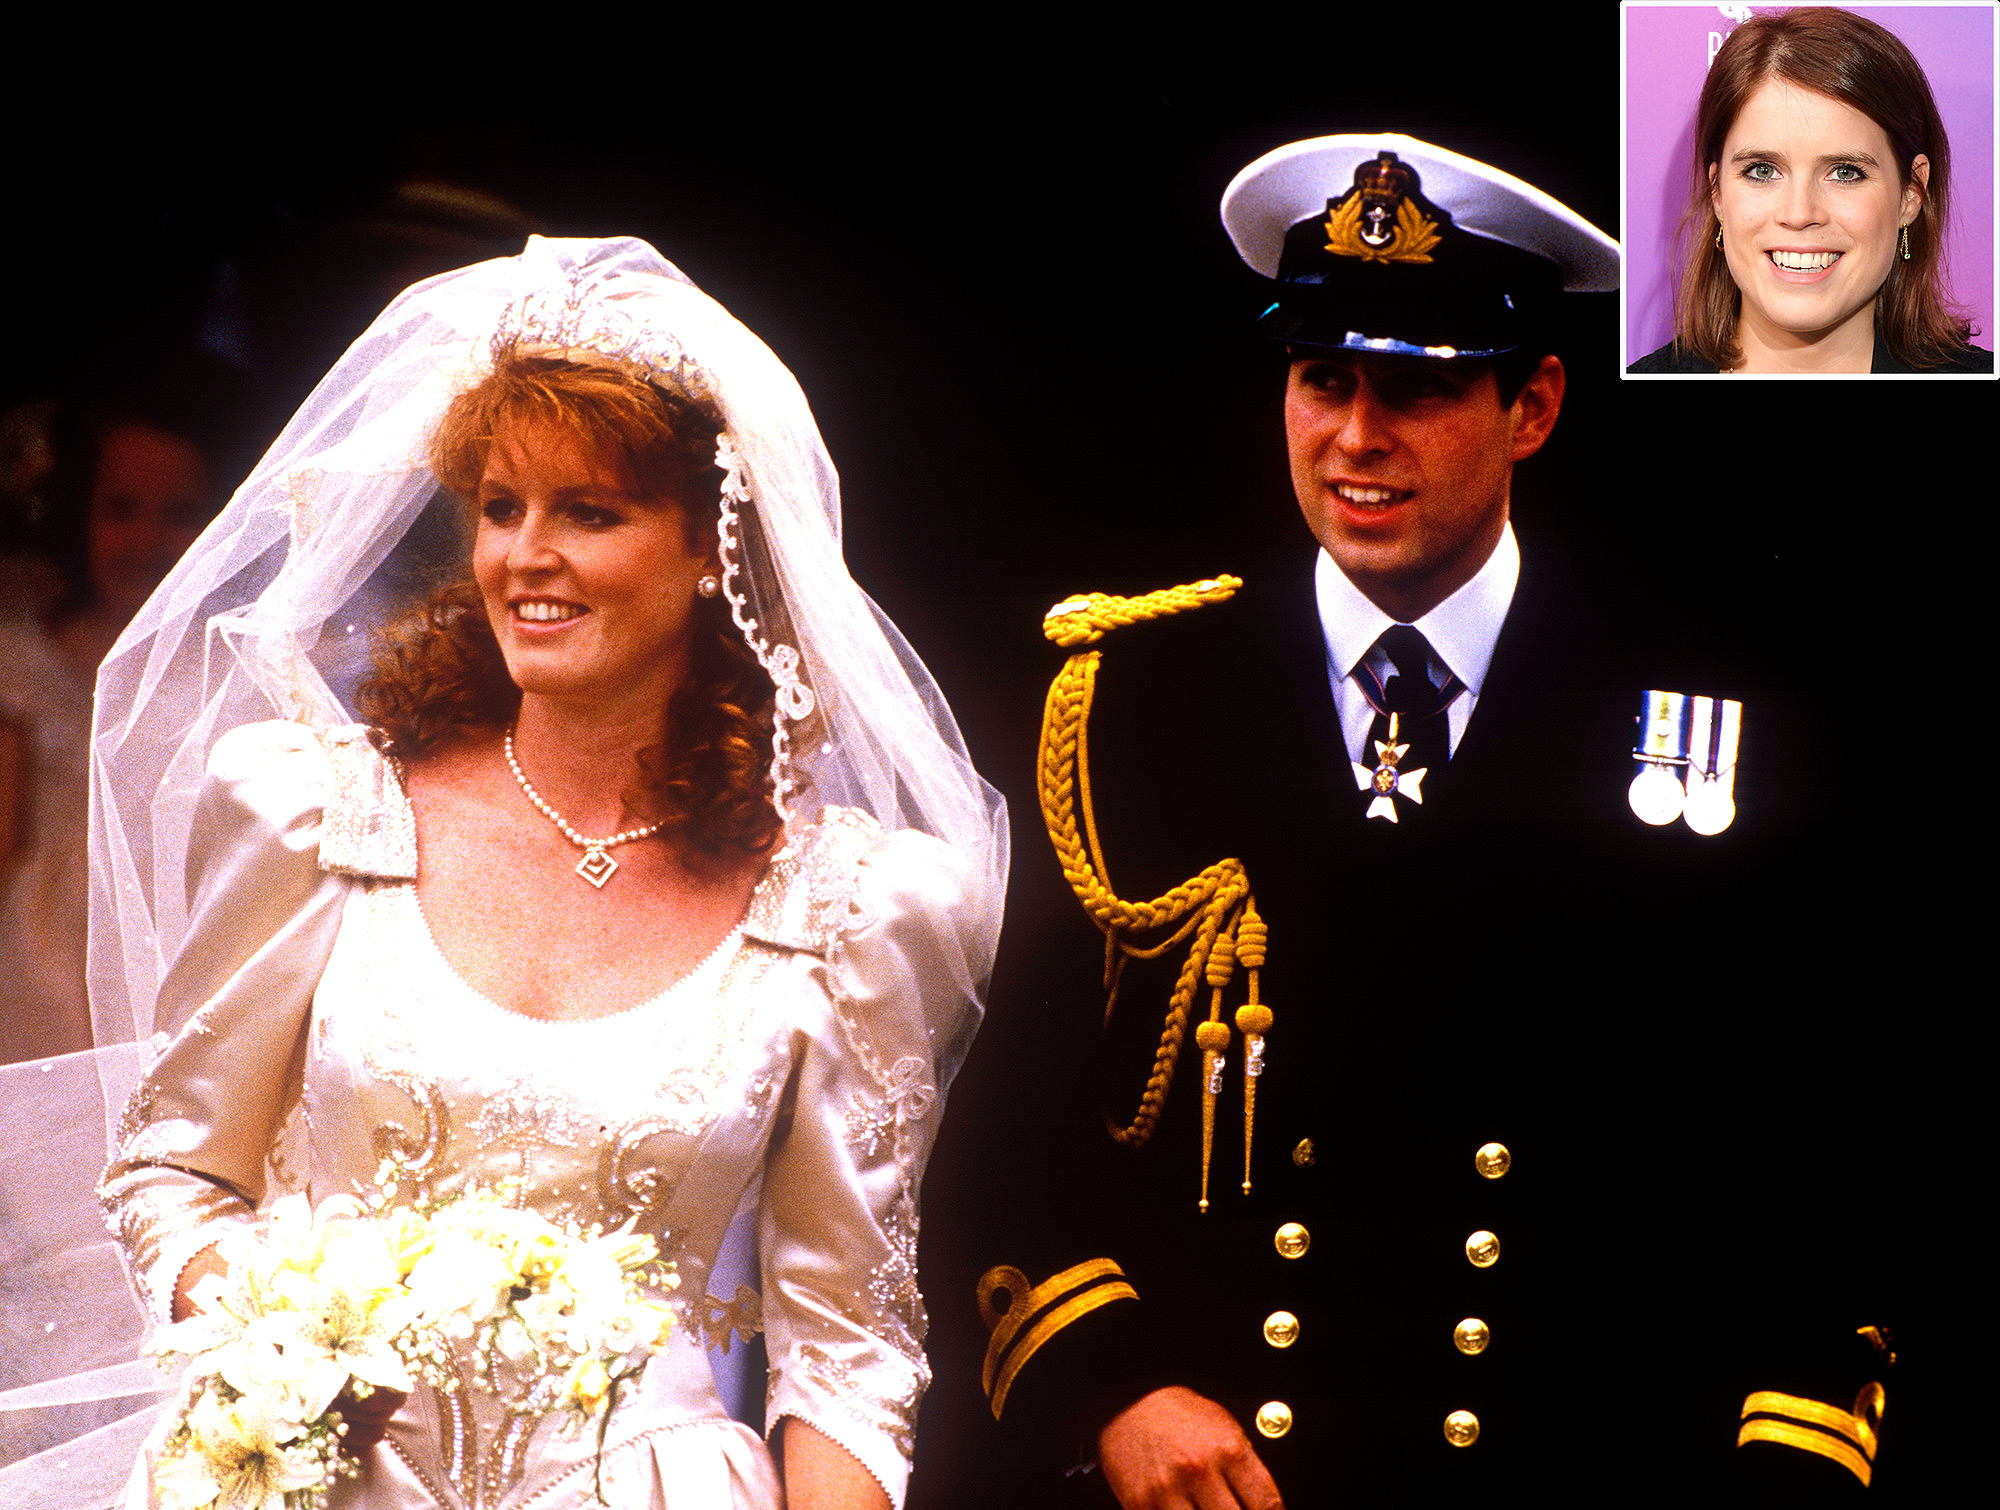 f Prince Andrew, Duke of York, and Sarah Ferguson and Princess Eugenie